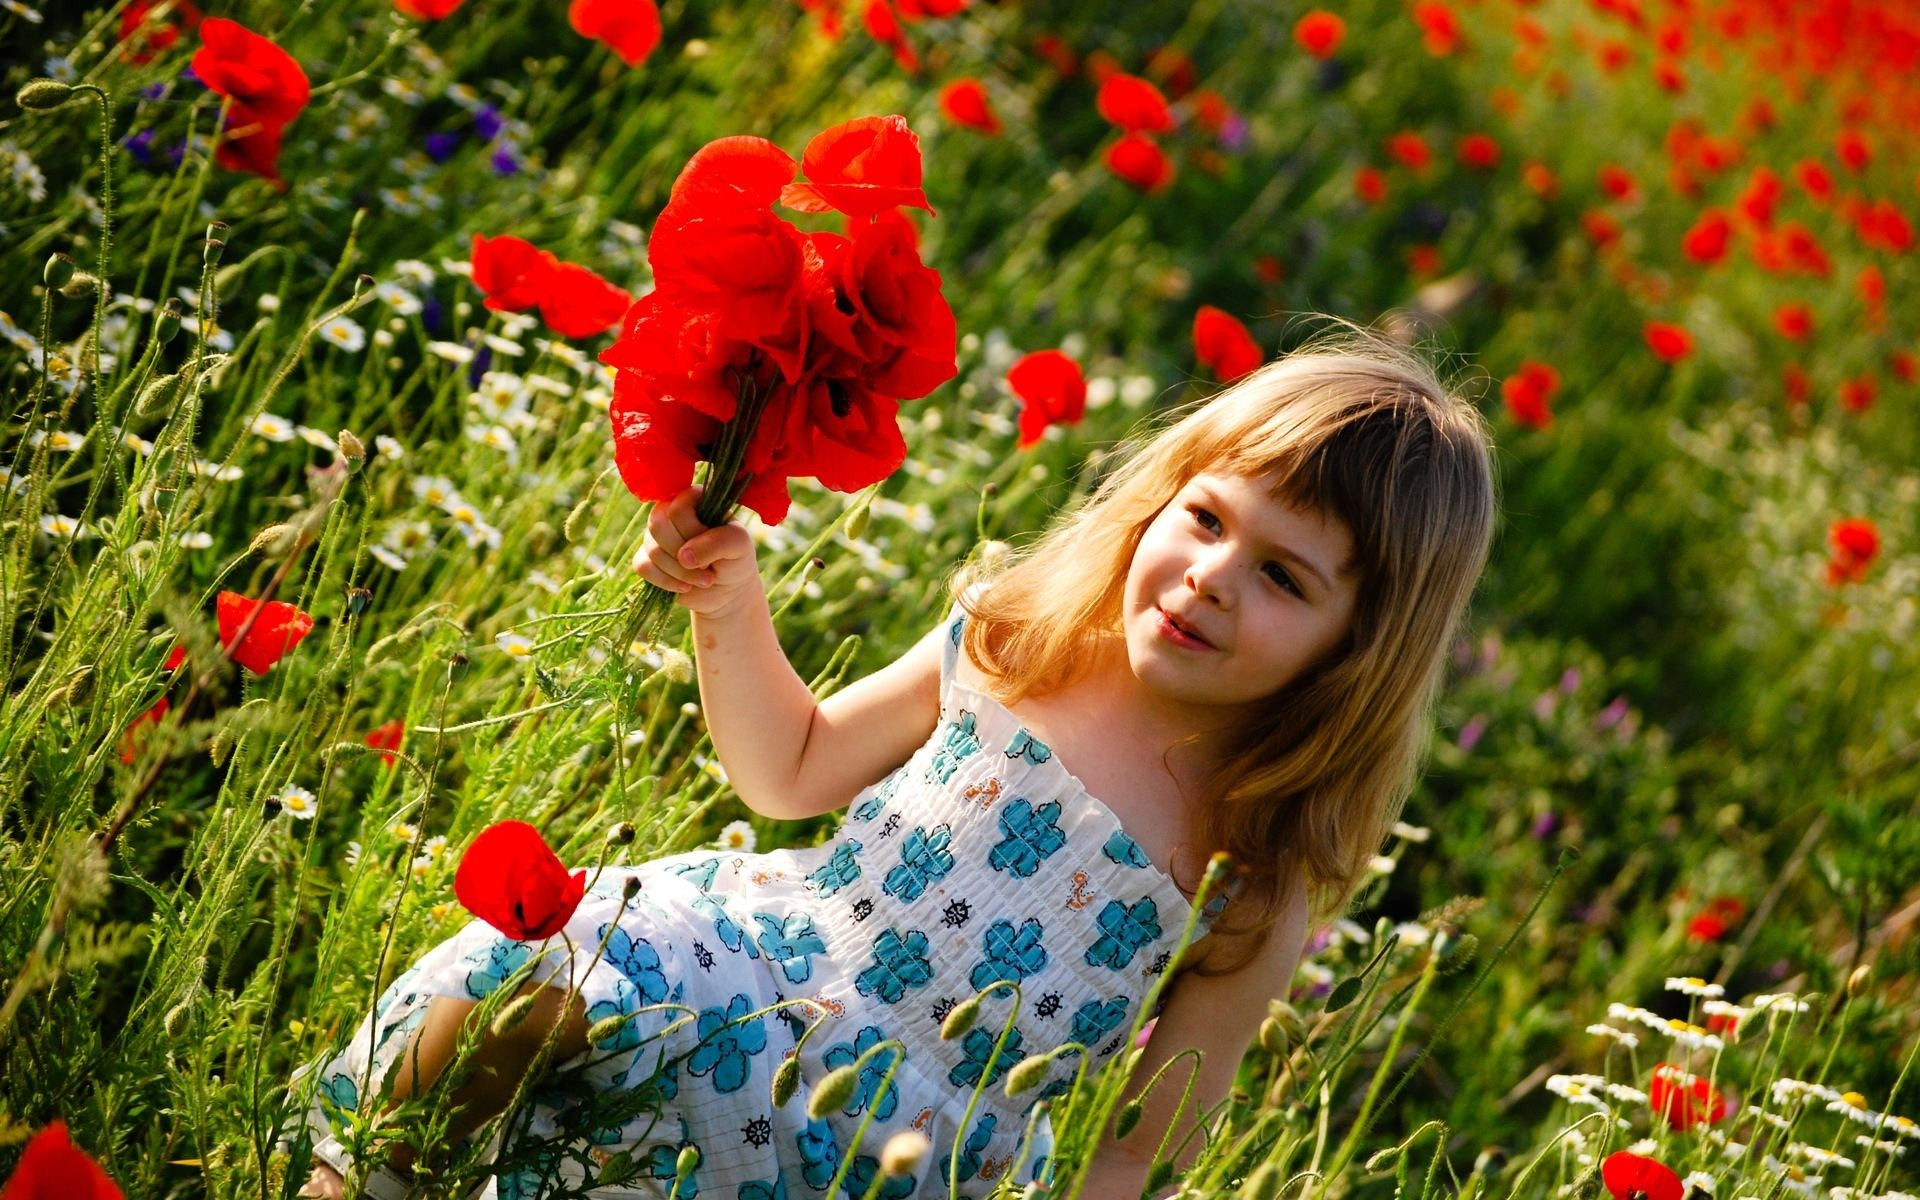 1920x1200 Wallpapers Backgrounds - people children kids cute females girls blondes  nature garden fields